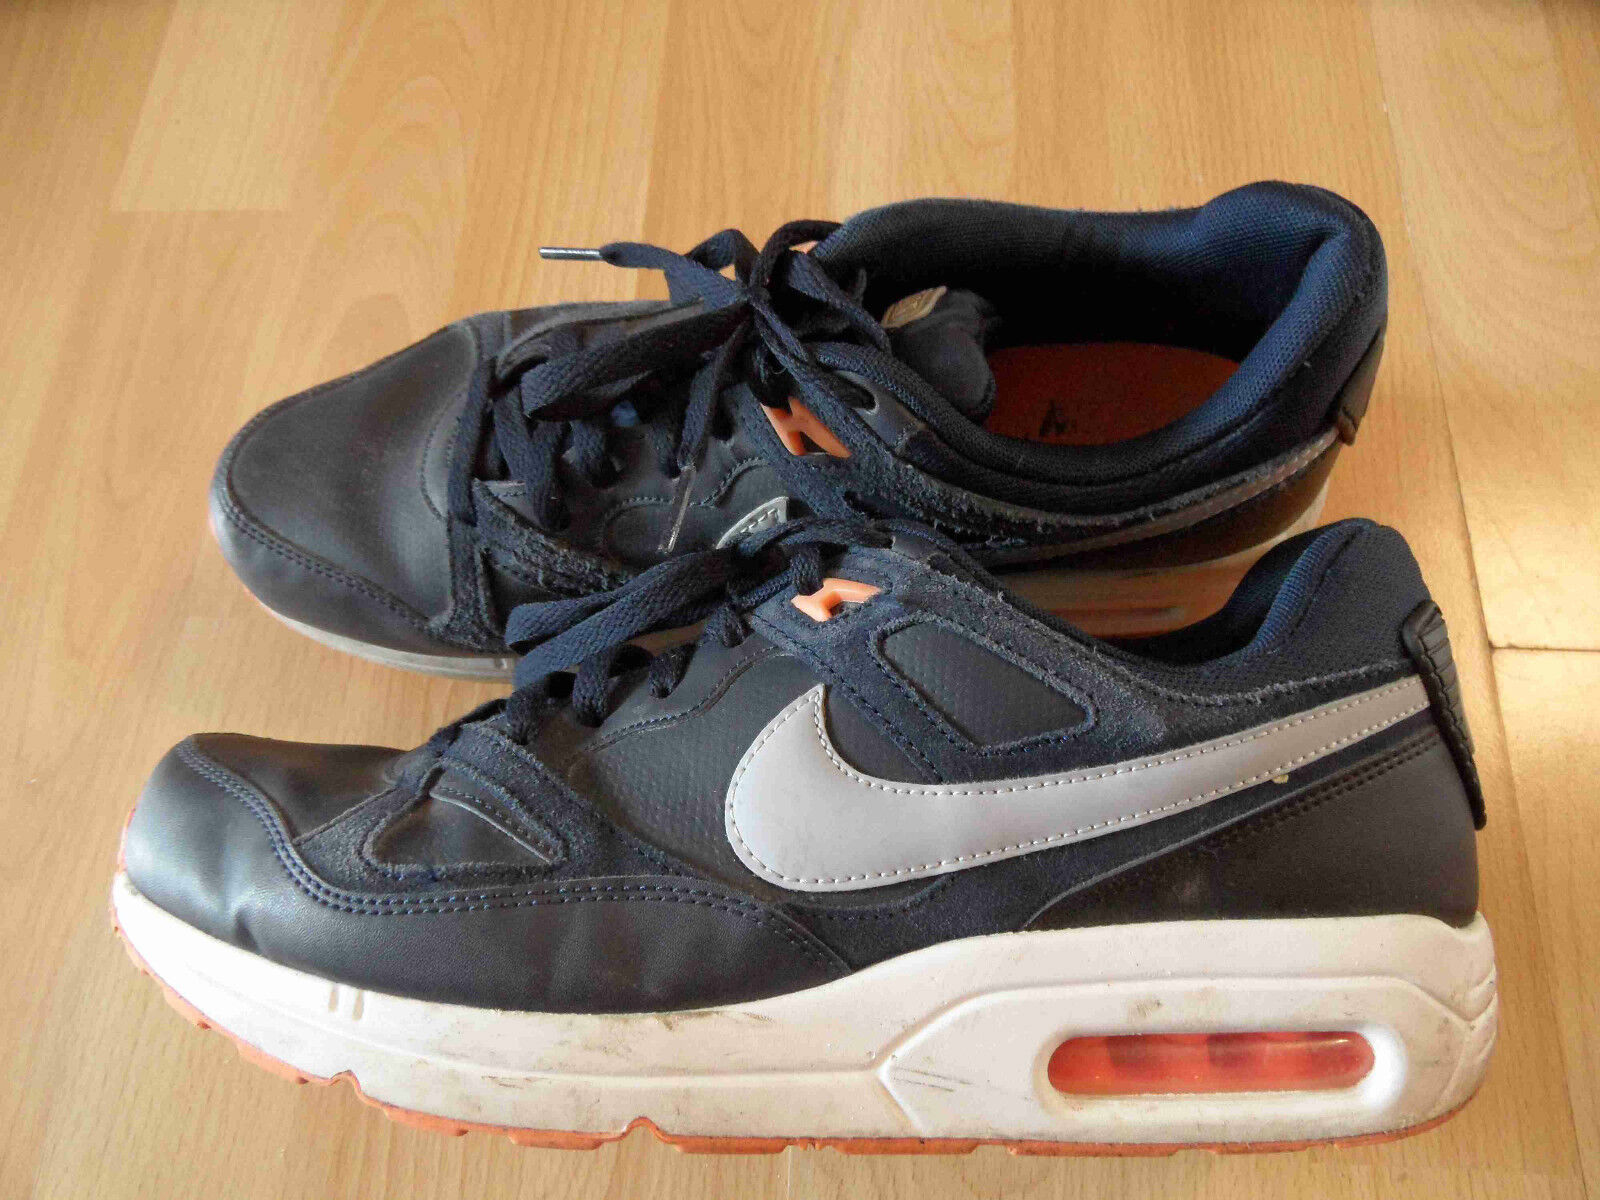 NIKE AIR MAX coole Sneakers blau grau Gr. 45 TOP MC516 The latest discount shoes for men and women